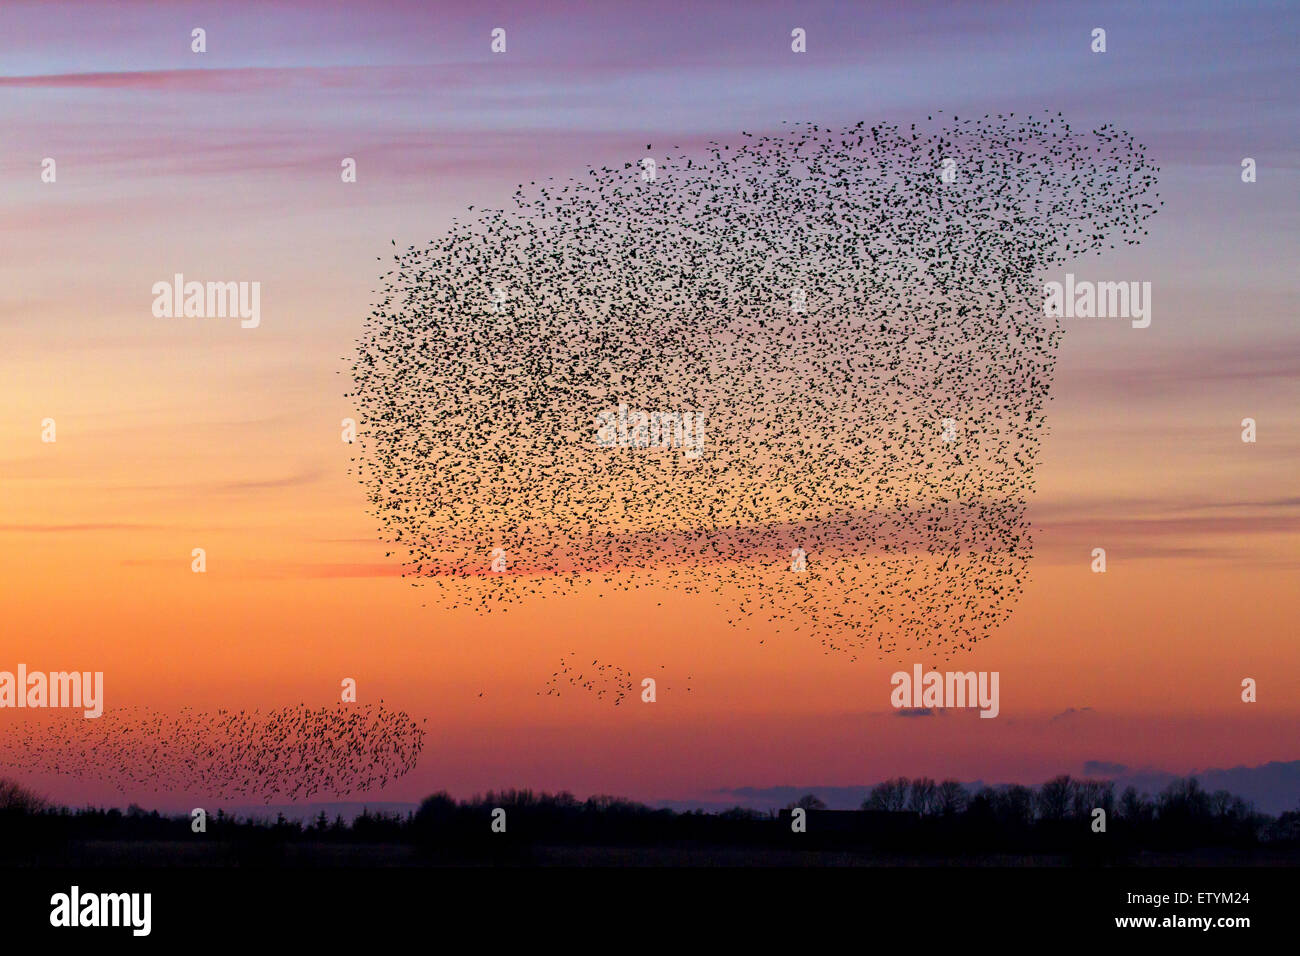 European starling murmuration / large flock of common starlings (Sturnus vulgaris) in flight at sunset - Stock Image